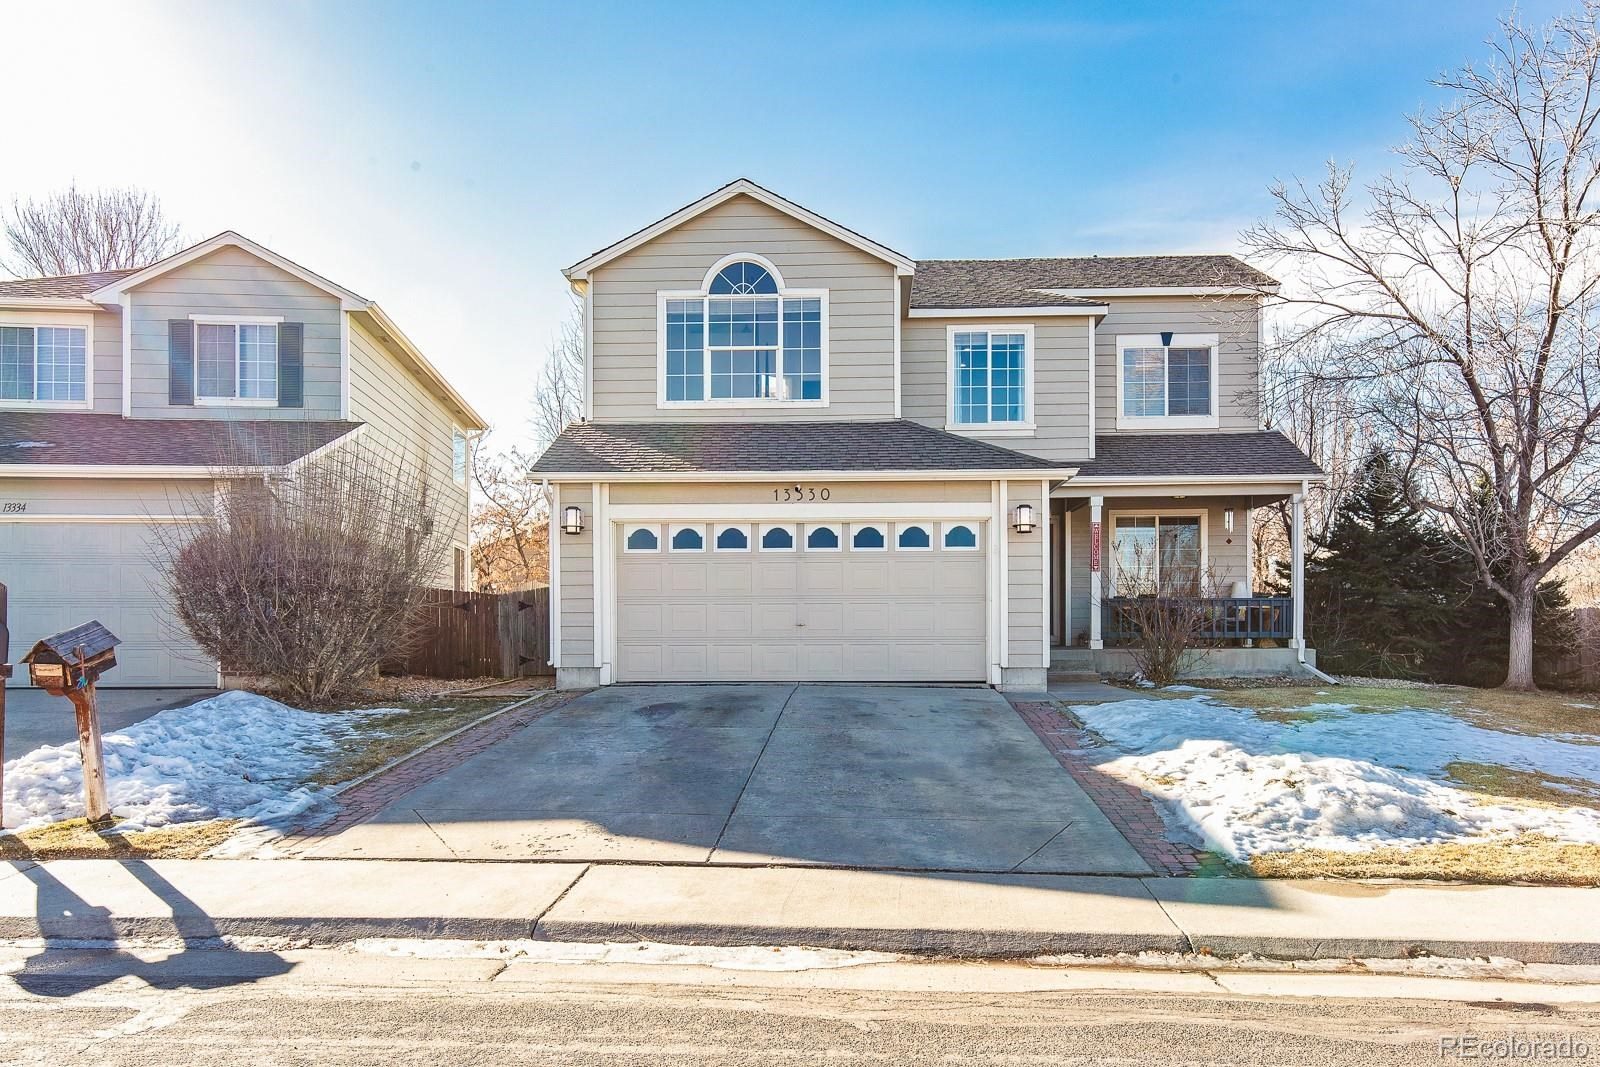 MLS# 3529158 - 2 - 13330 Race Street, Thornton, CO 80241